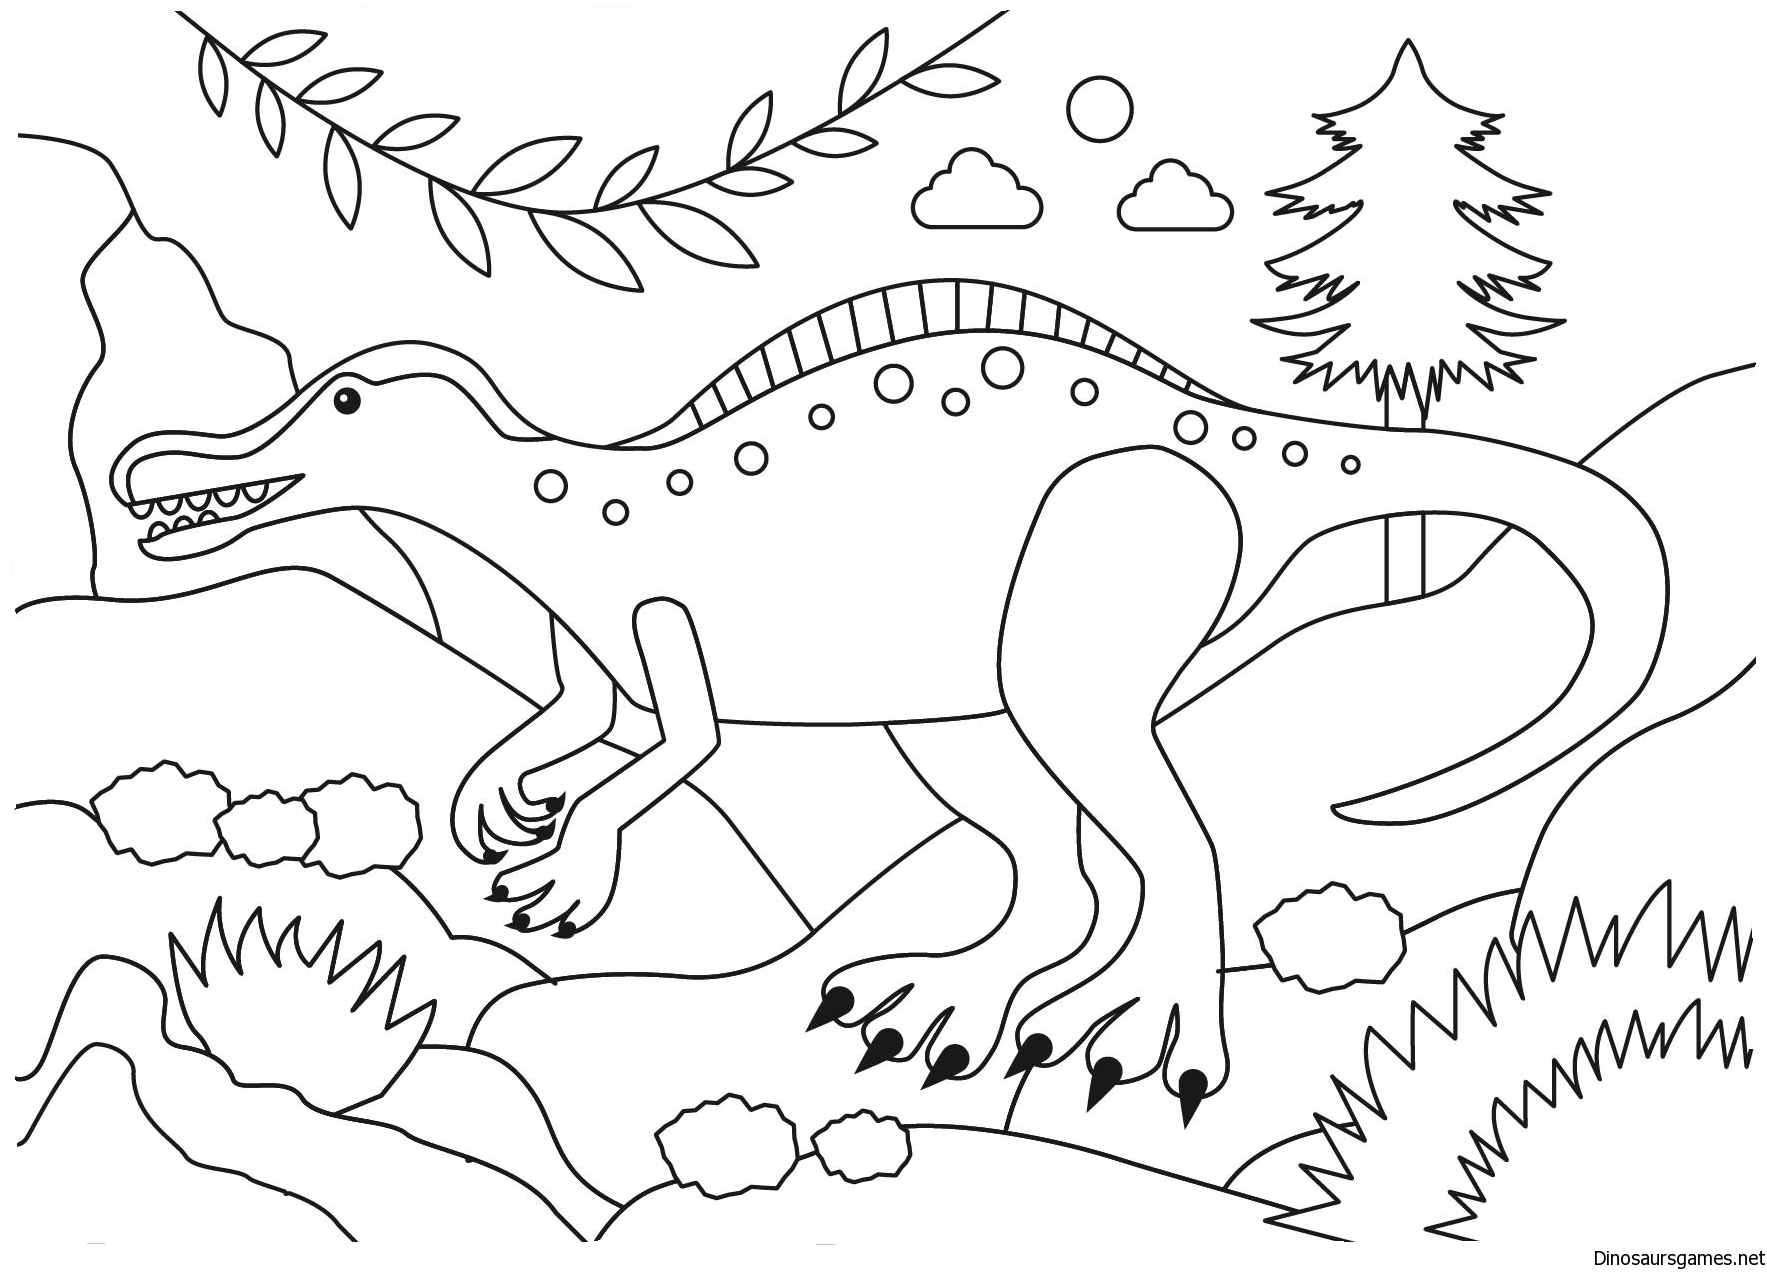 image free download . Suchomimus Dinosaur Coloring Page